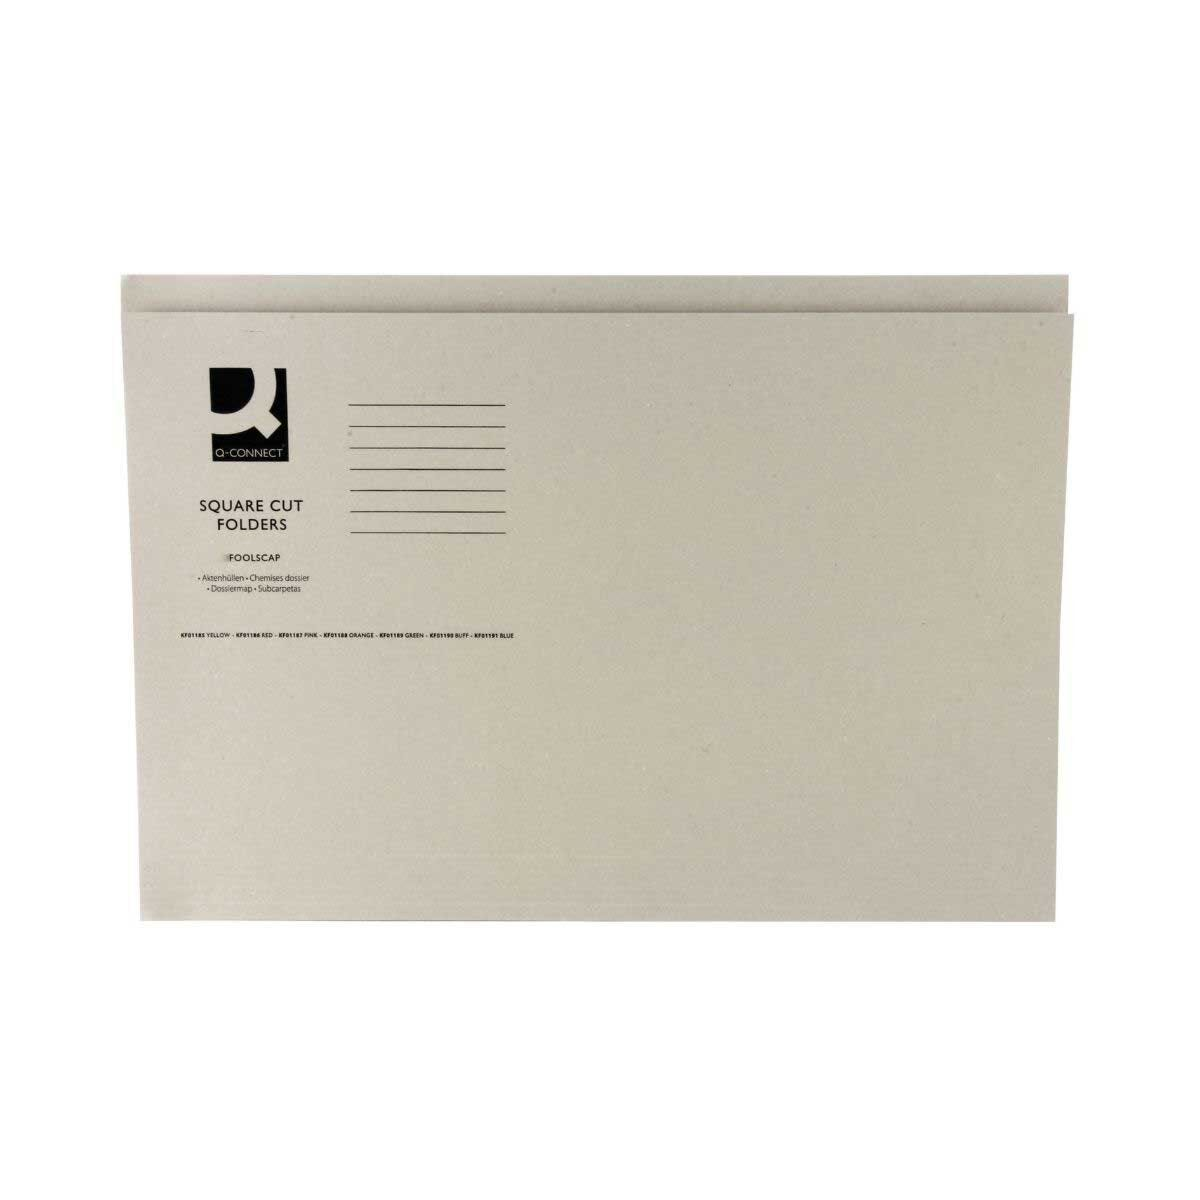 Square Cut Folder 180gsm Foolscap Buff